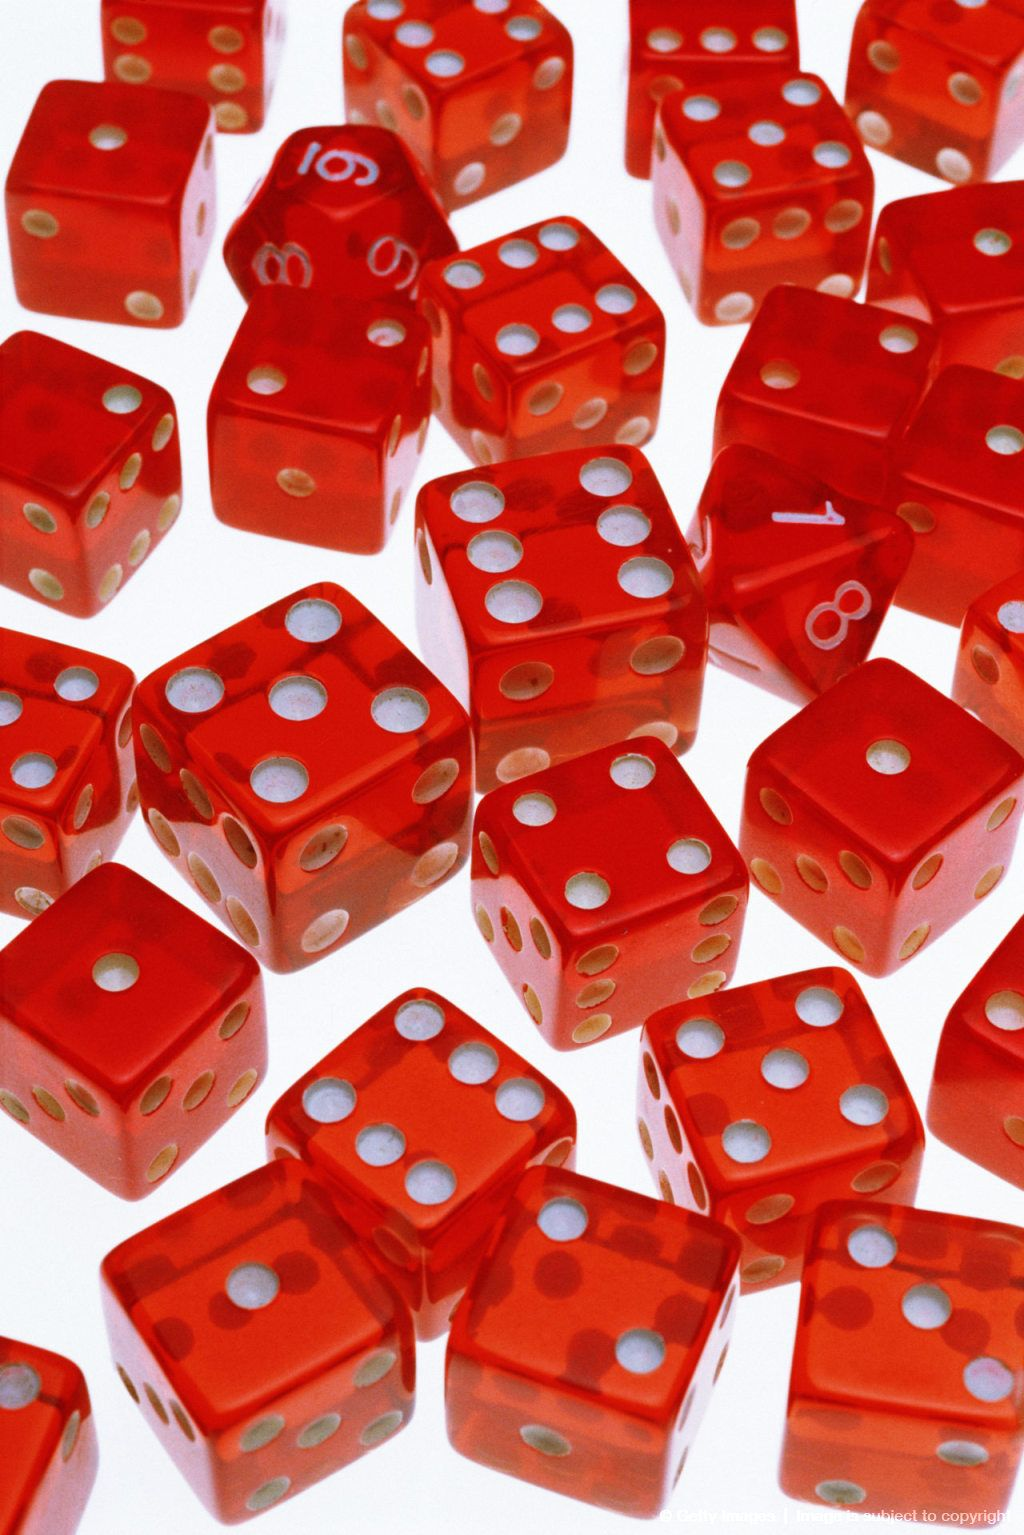 Image detail for red dice red aesthetic royal red